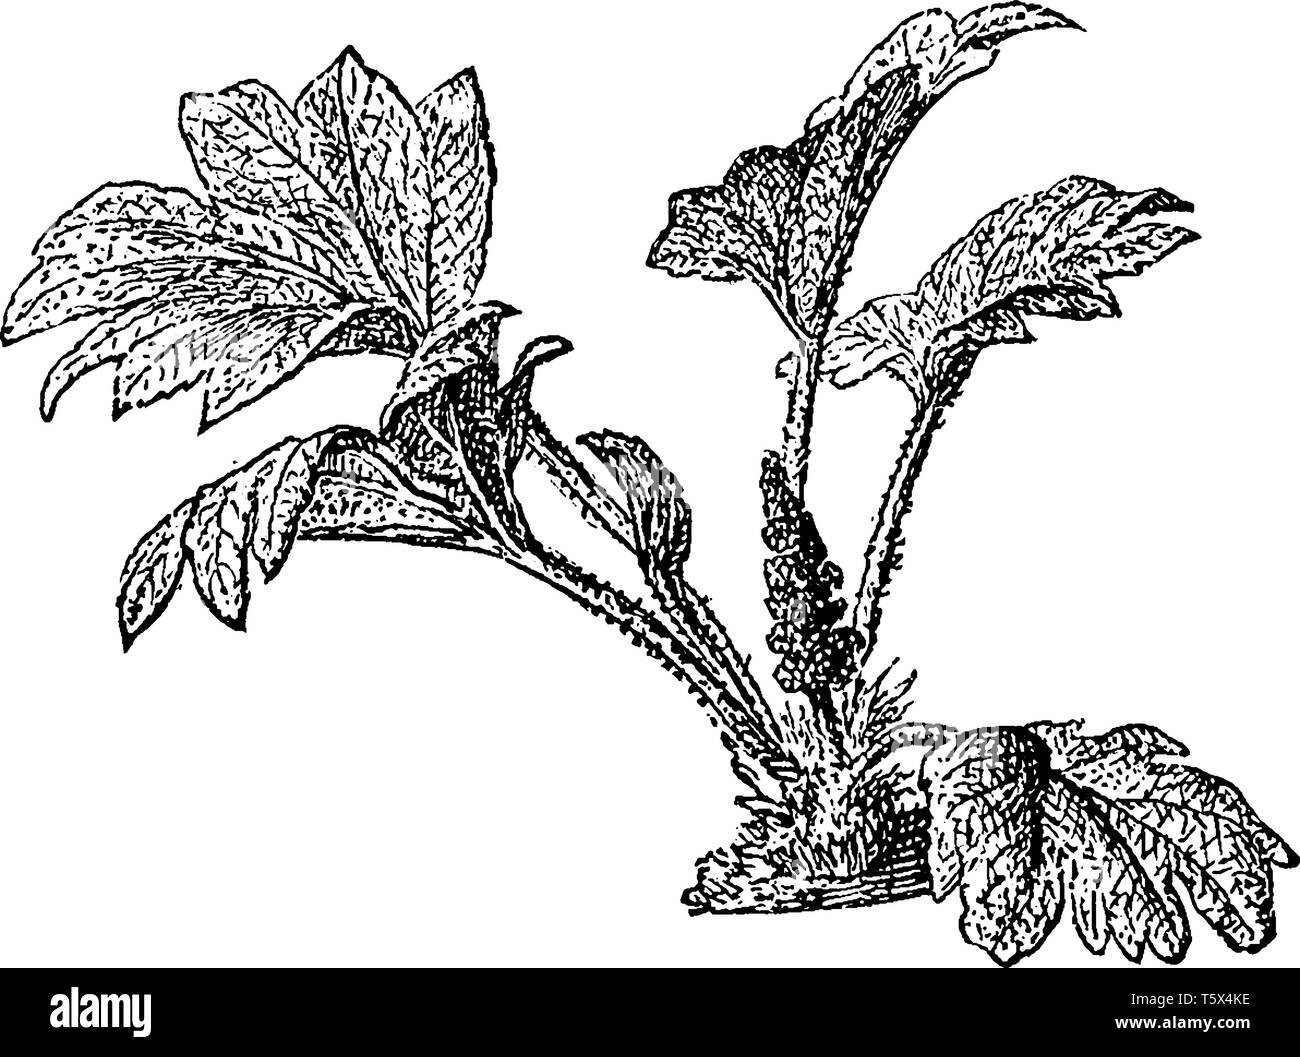 This is images of Chilean Rhubarband also known as the synonym Gunnera Scabra, vintage line drawing or engraving illustration. Stock Vector